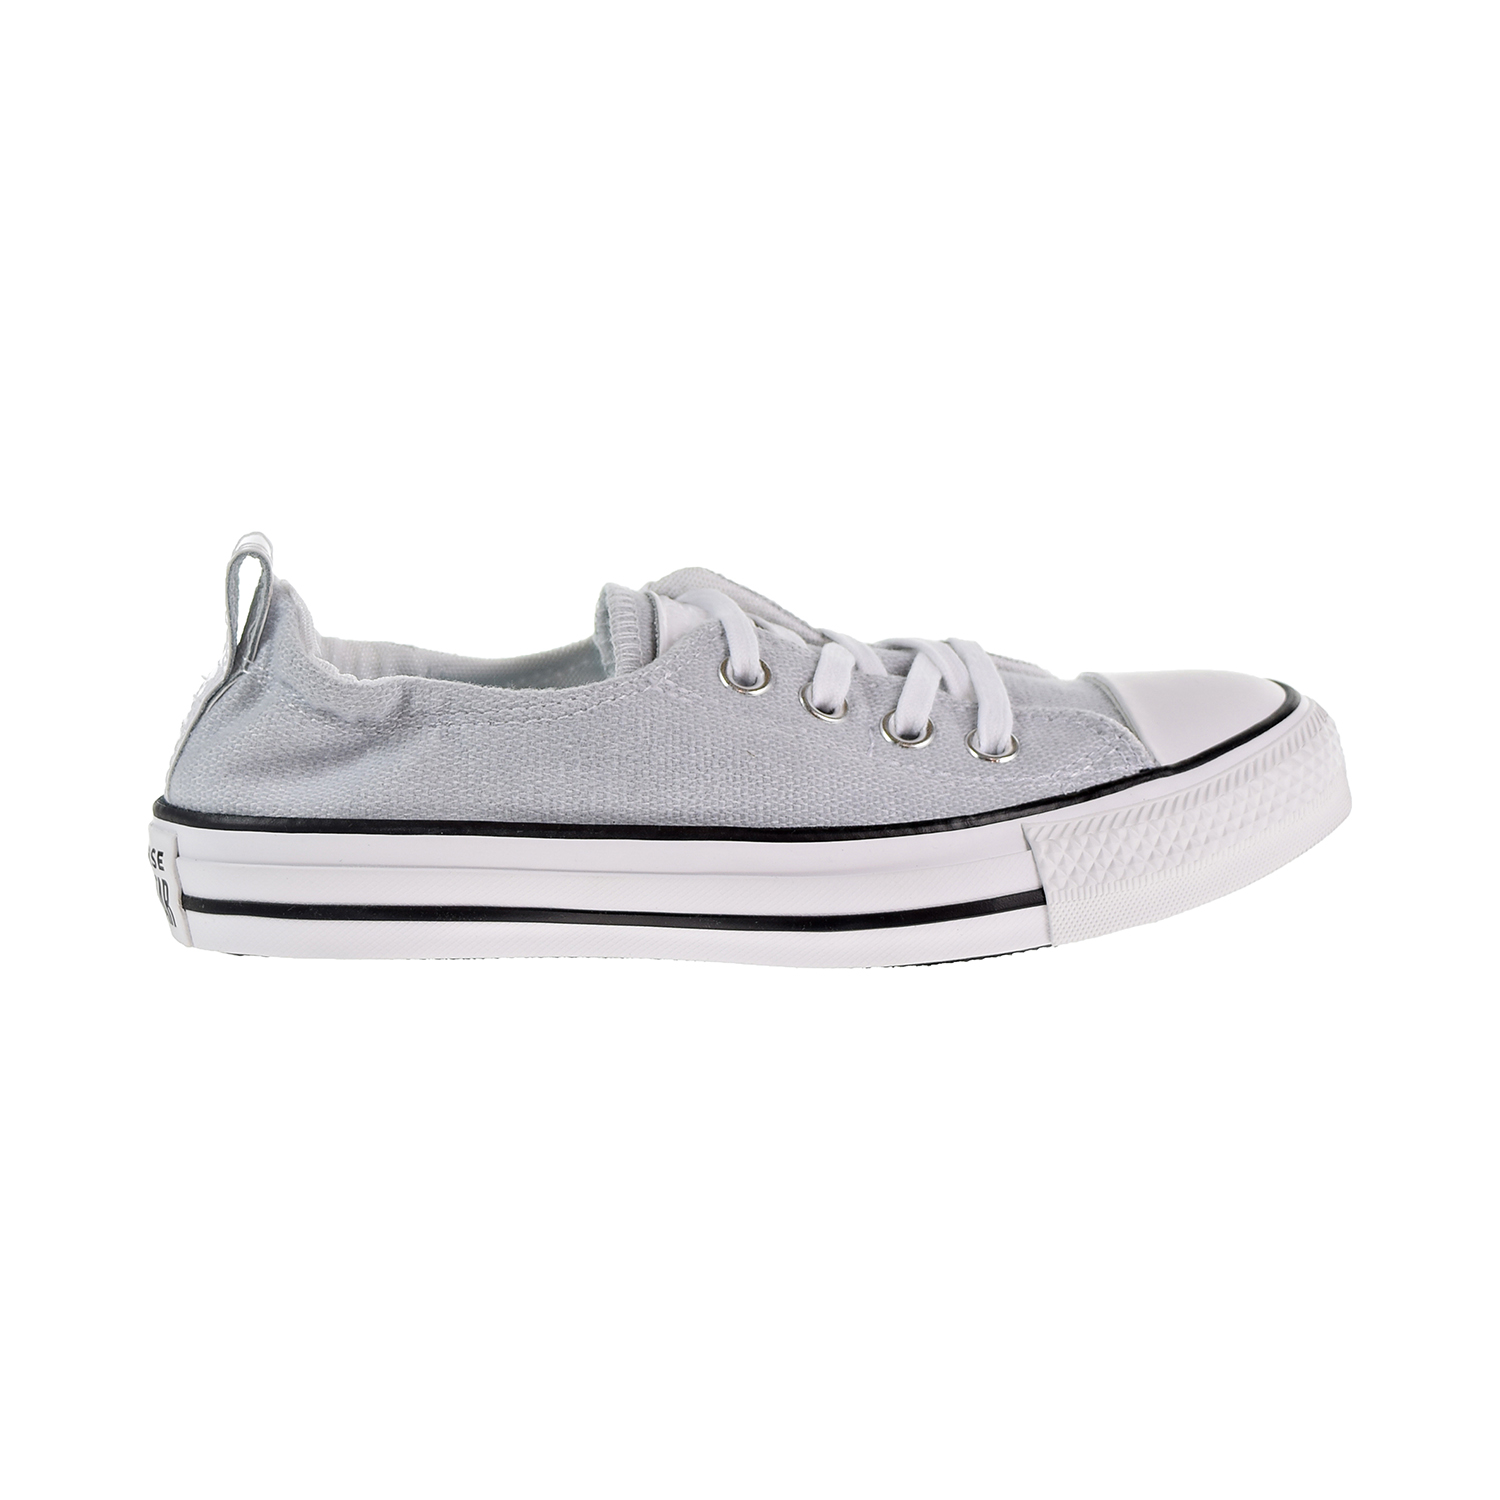 6f9d4137b90580 Details about Converse Chuck Taylor All Star Shoreline Slip Women s Shoes  White Black 562458f